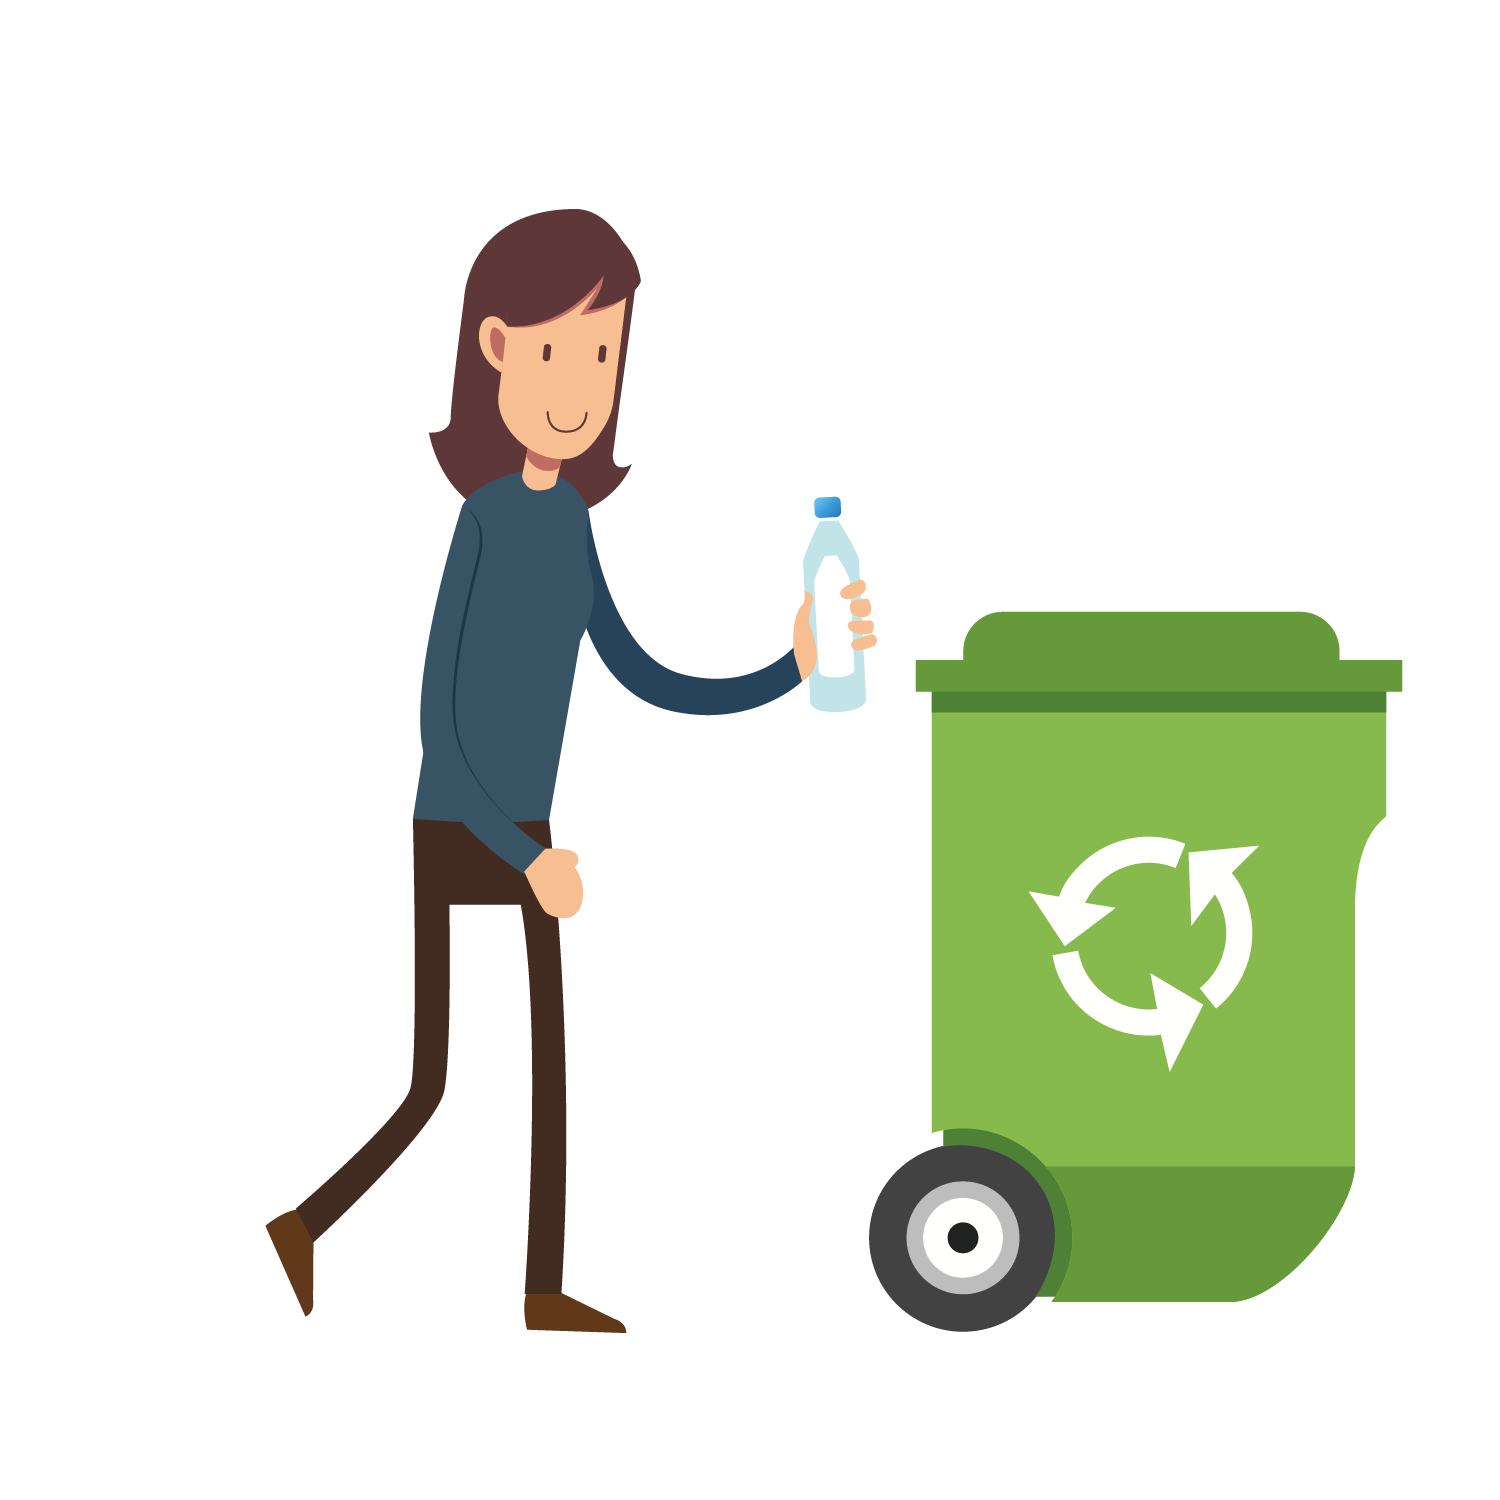 Waste container recycling throwing. Environment clipart full bin